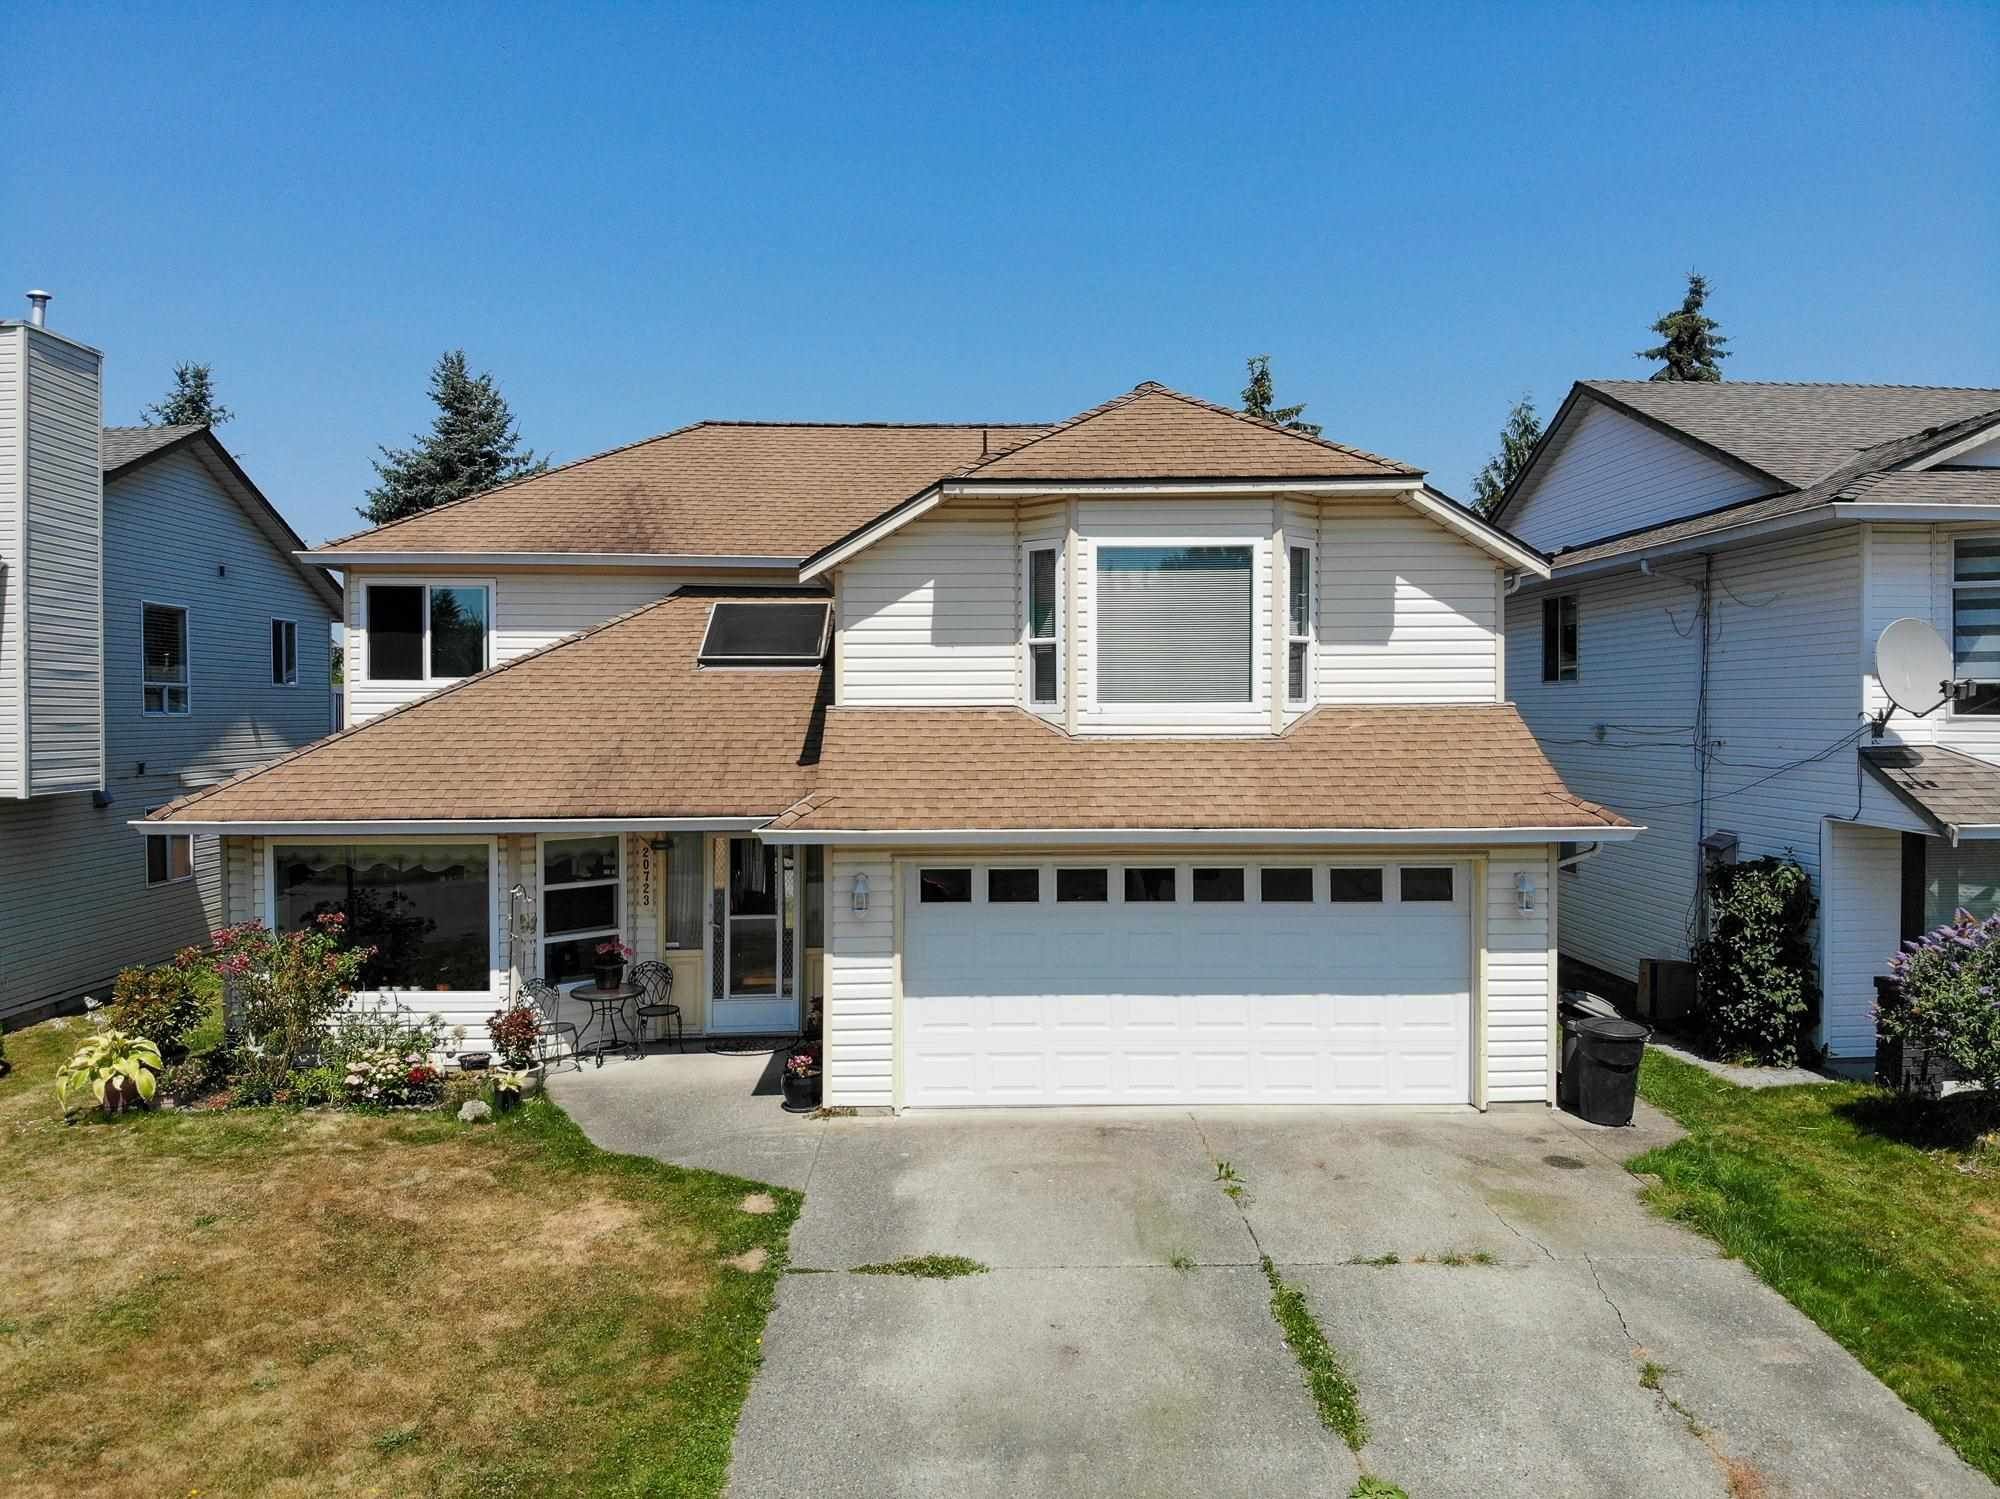 Main Photo: 20723 51A Avenue in Langley: Langley City House for sale : MLS®# R2601553